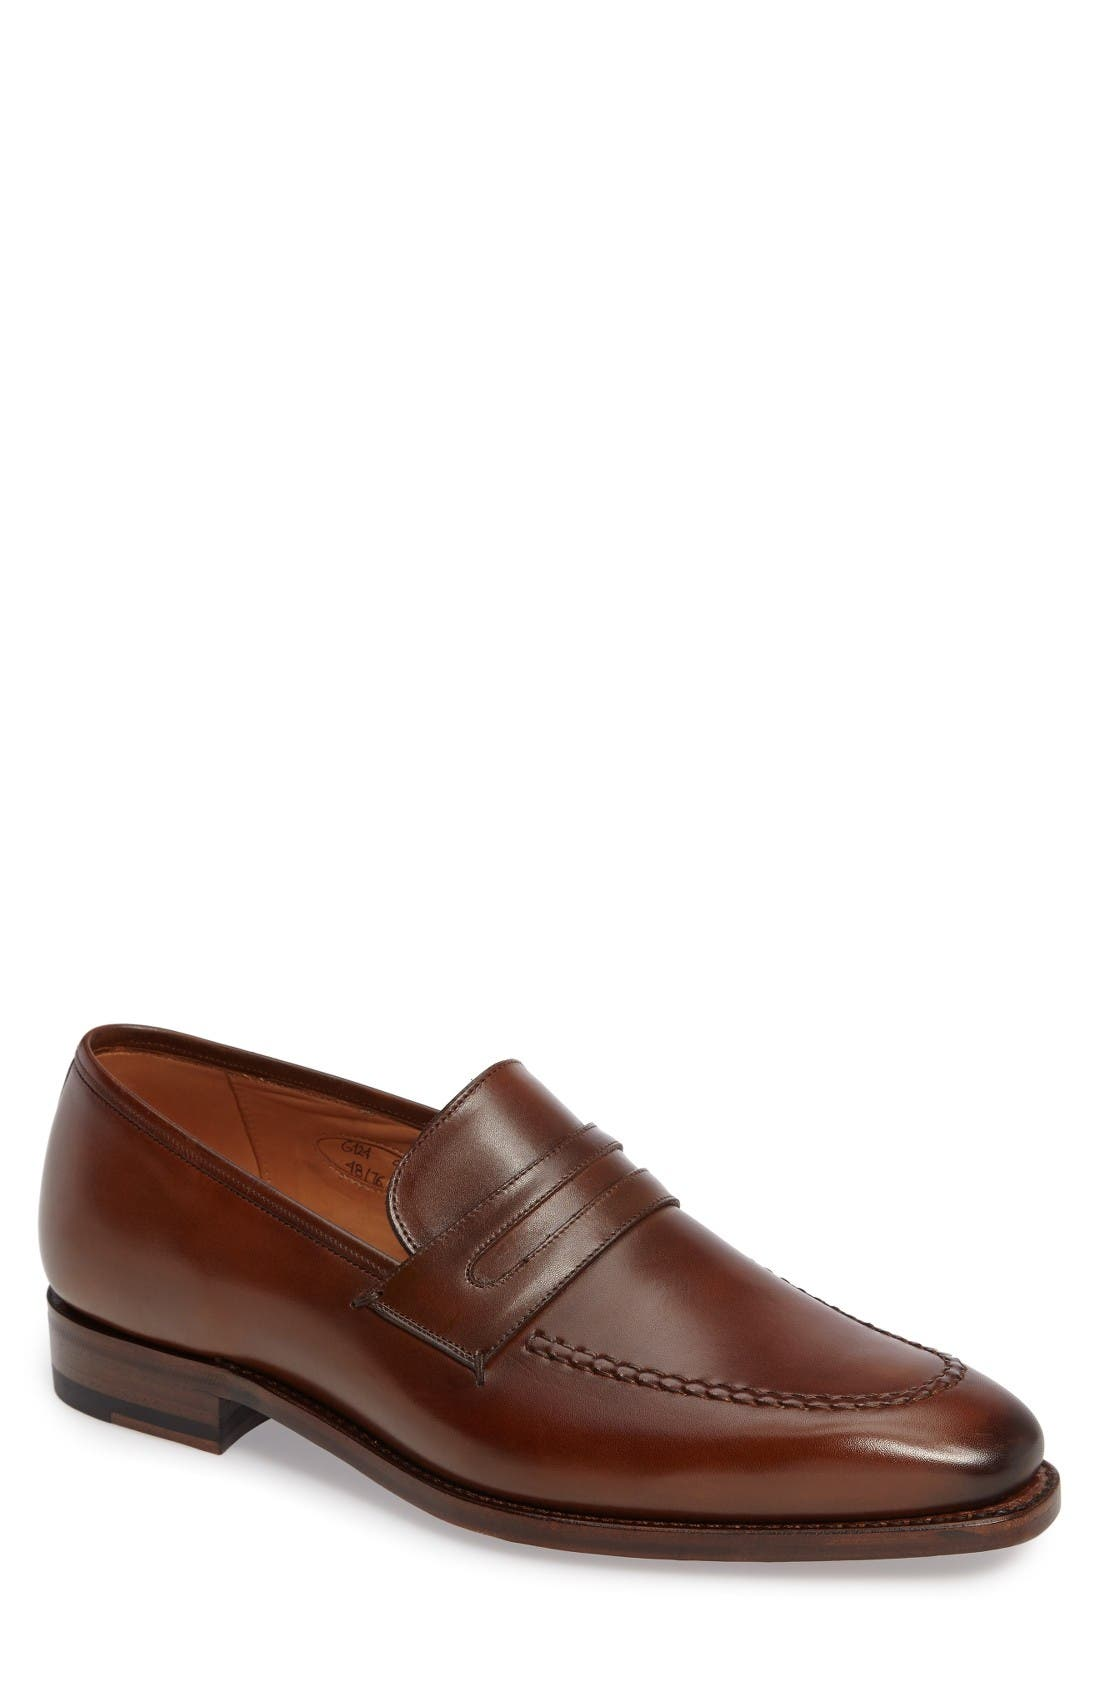 IMPRONTA by Mezlan G124 Apron Toe Loafer